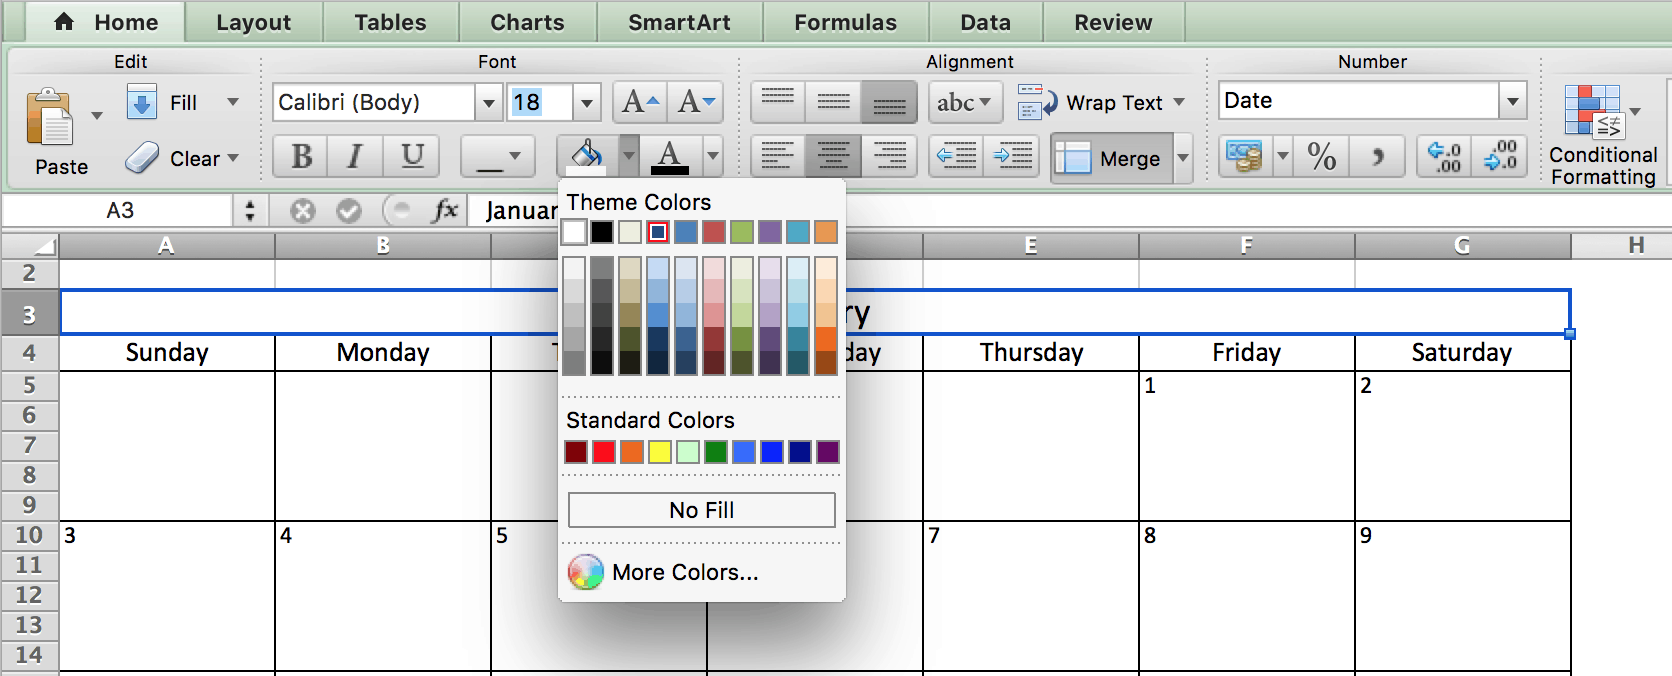 Ediblewildsus  Mesmerizing Make A  Calendar In Excel Includes Free Template With Remarkable Choosing Colors  Calendar In Excel With Charming Calculating Median In Excel Also How To Add Data Analysis In Excel Mac In Addition Common Excel Functions And Free Barcode Generator Excel As Well As How Do I Create A Chart In Excel Additionally Add Months To Date In Excel From Smartsheetcom With Ediblewildsus  Remarkable Make A  Calendar In Excel Includes Free Template With Charming Choosing Colors  Calendar In Excel And Mesmerizing Calculating Median In Excel Also How To Add Data Analysis In Excel Mac In Addition Common Excel Functions From Smartsheetcom